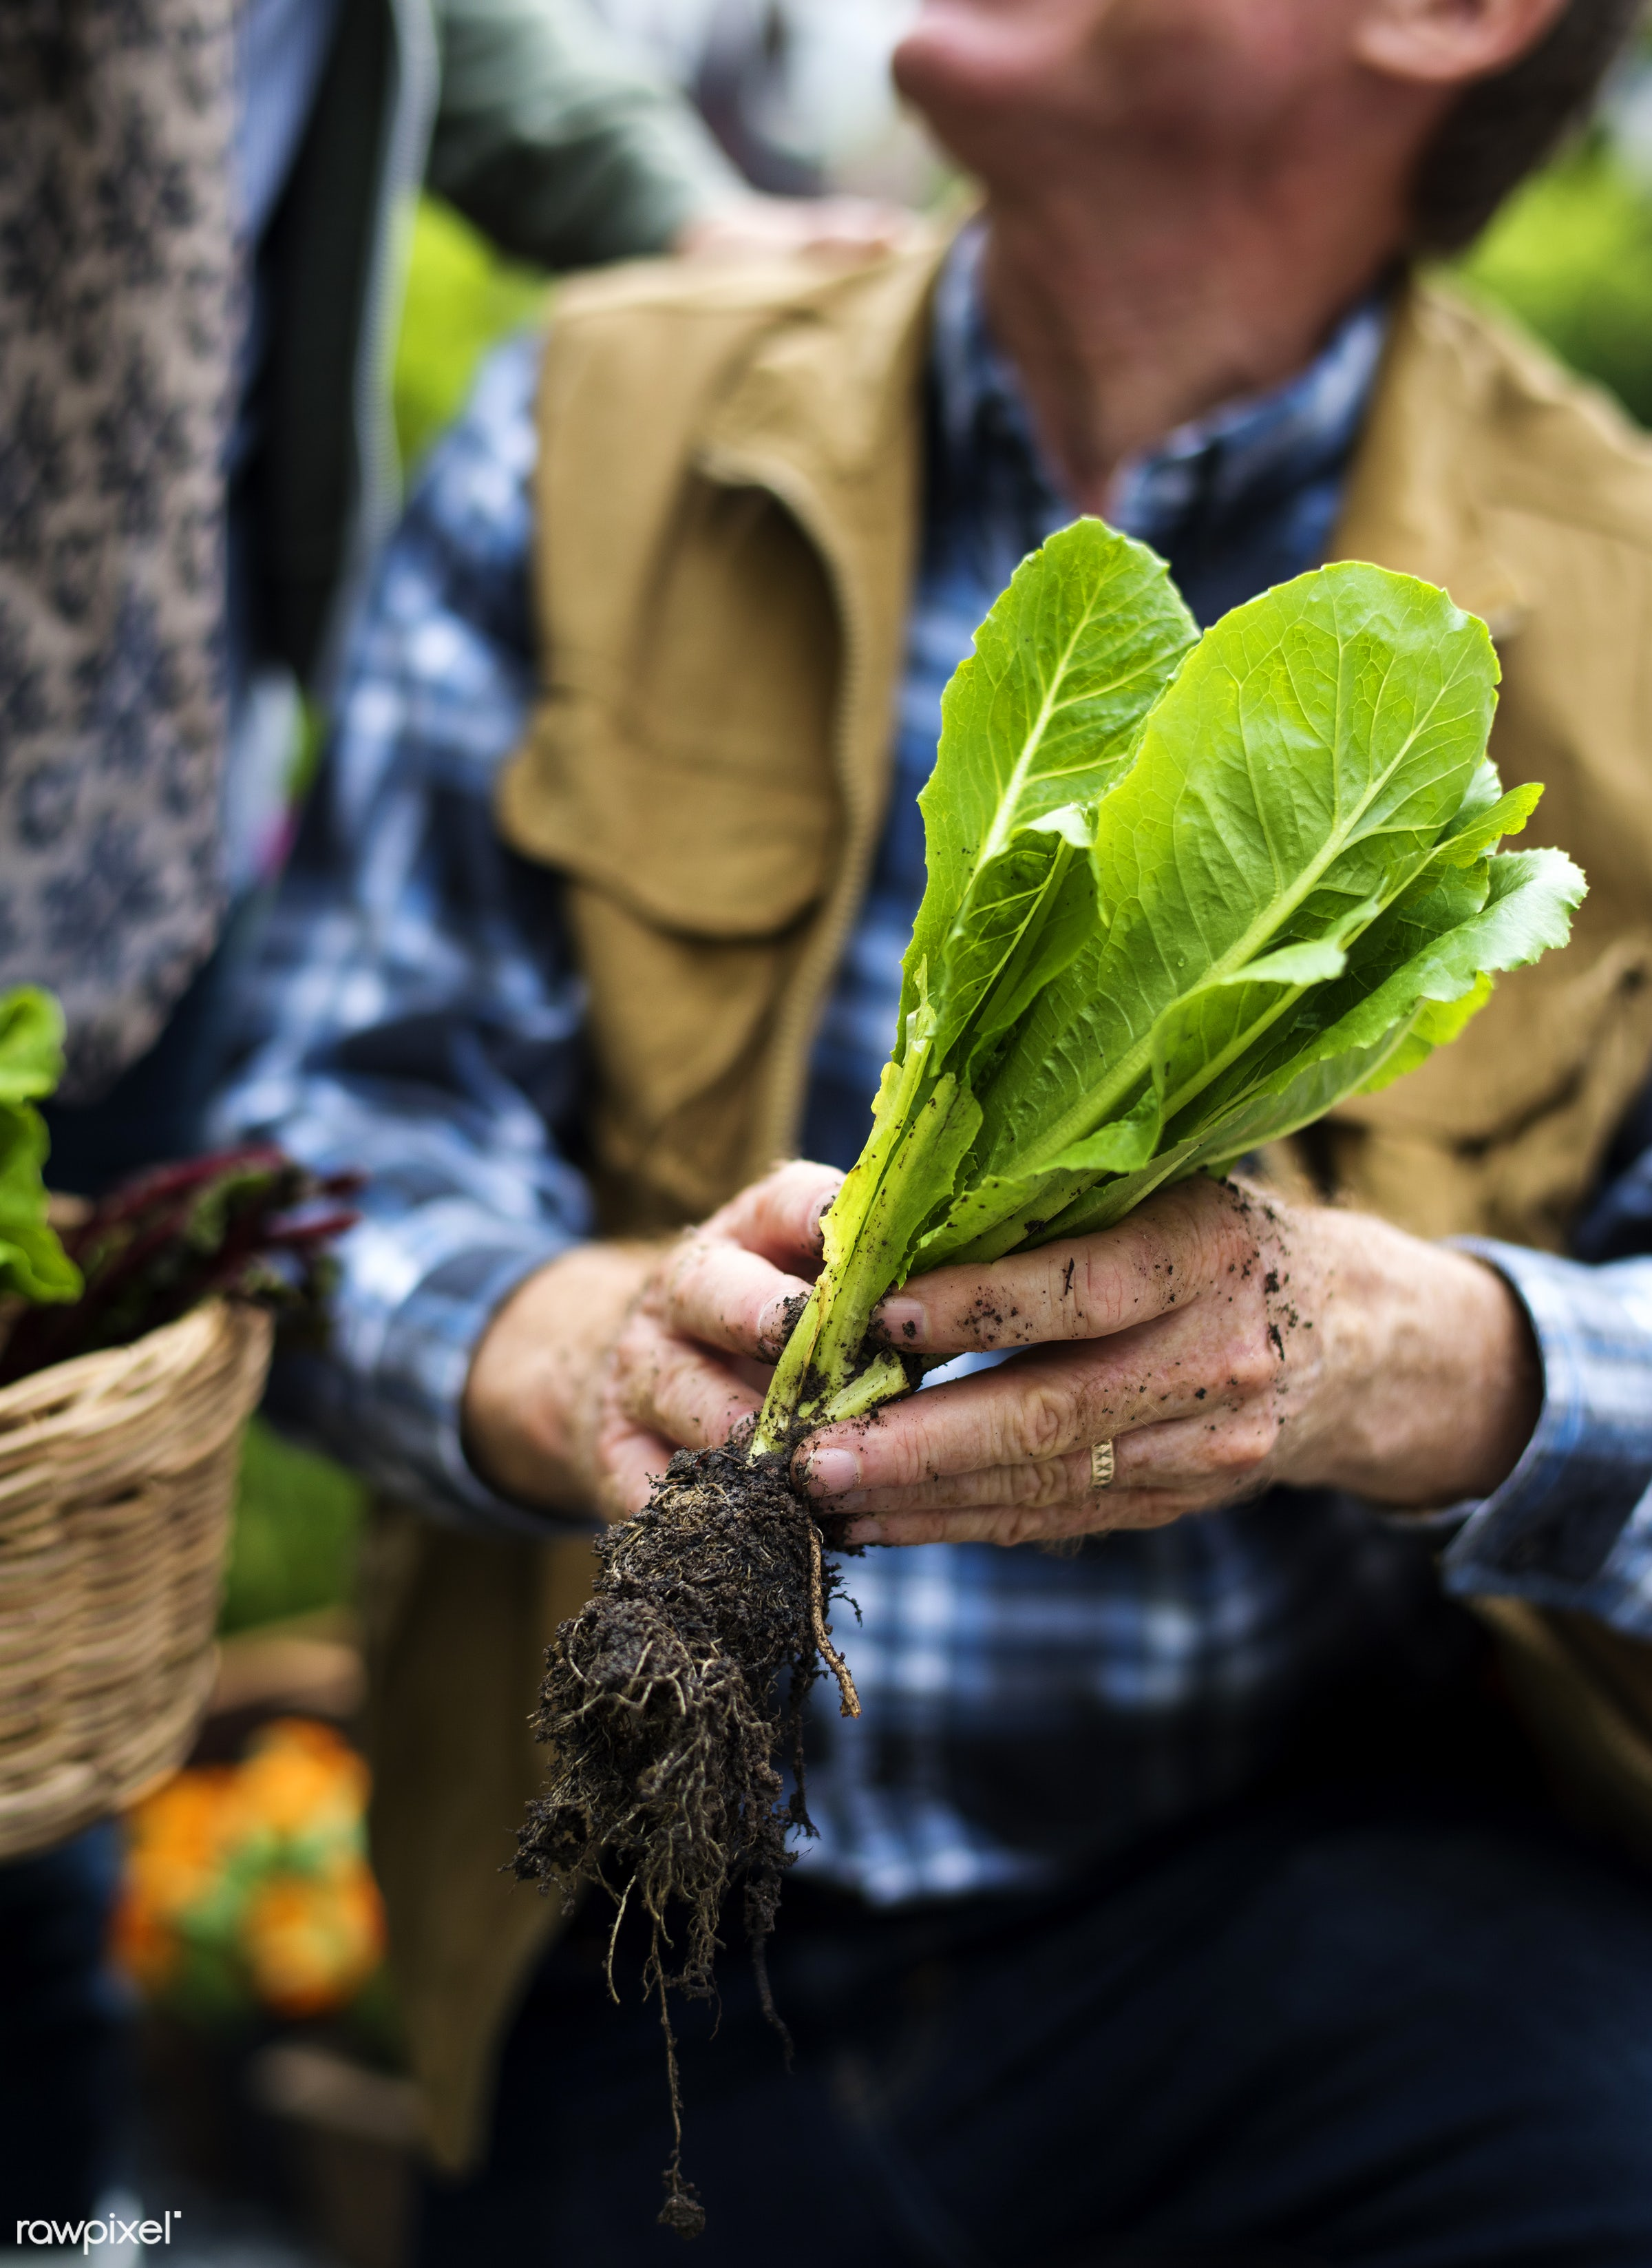 salad, person, root, holding, people, nature, woman, lifestyle, shirt, ring, health, nutrition, food, vegetable, soil, raw,...